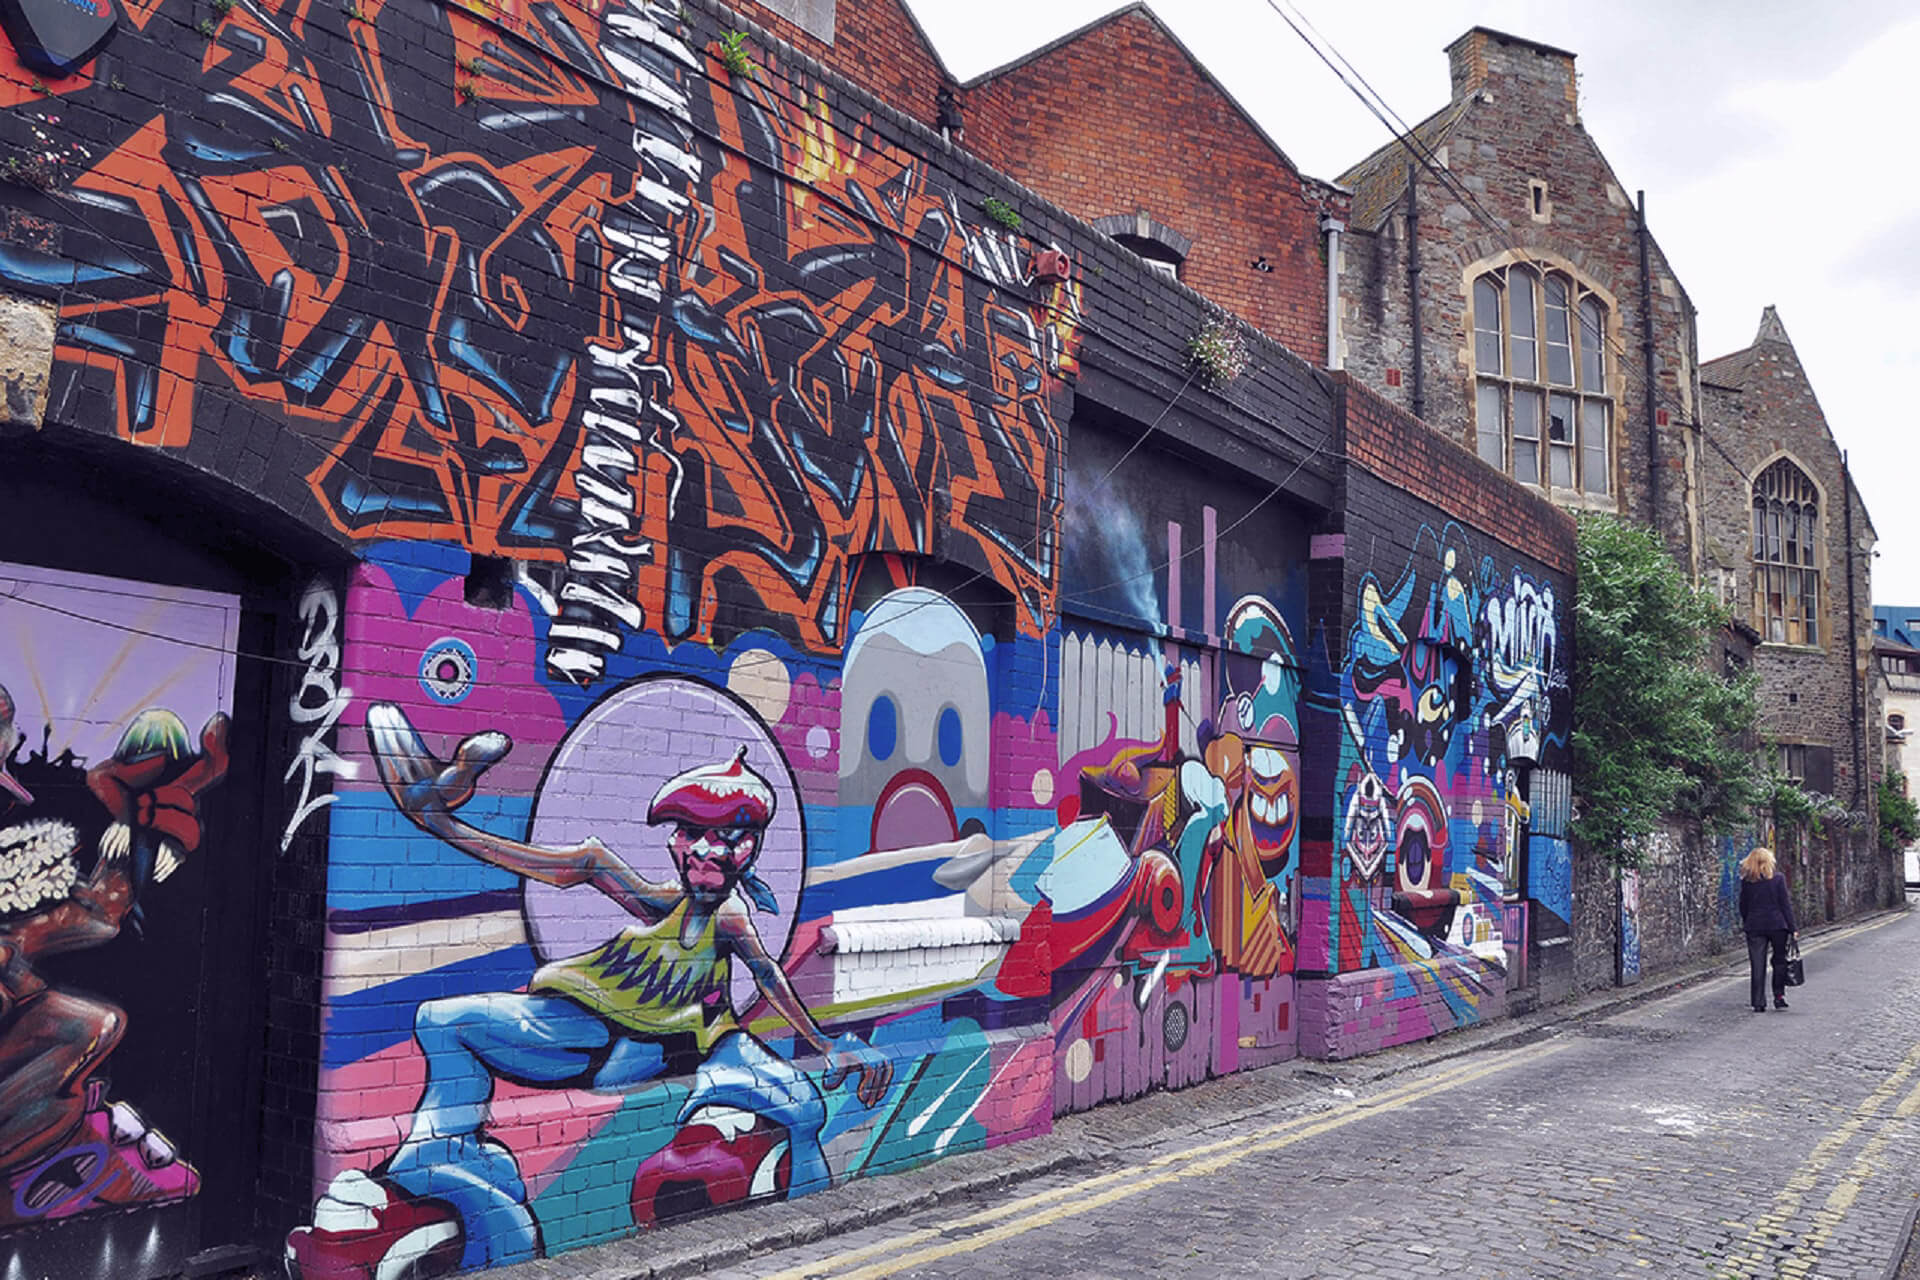 Bristol - Cities in which you will be able to enjoy street art